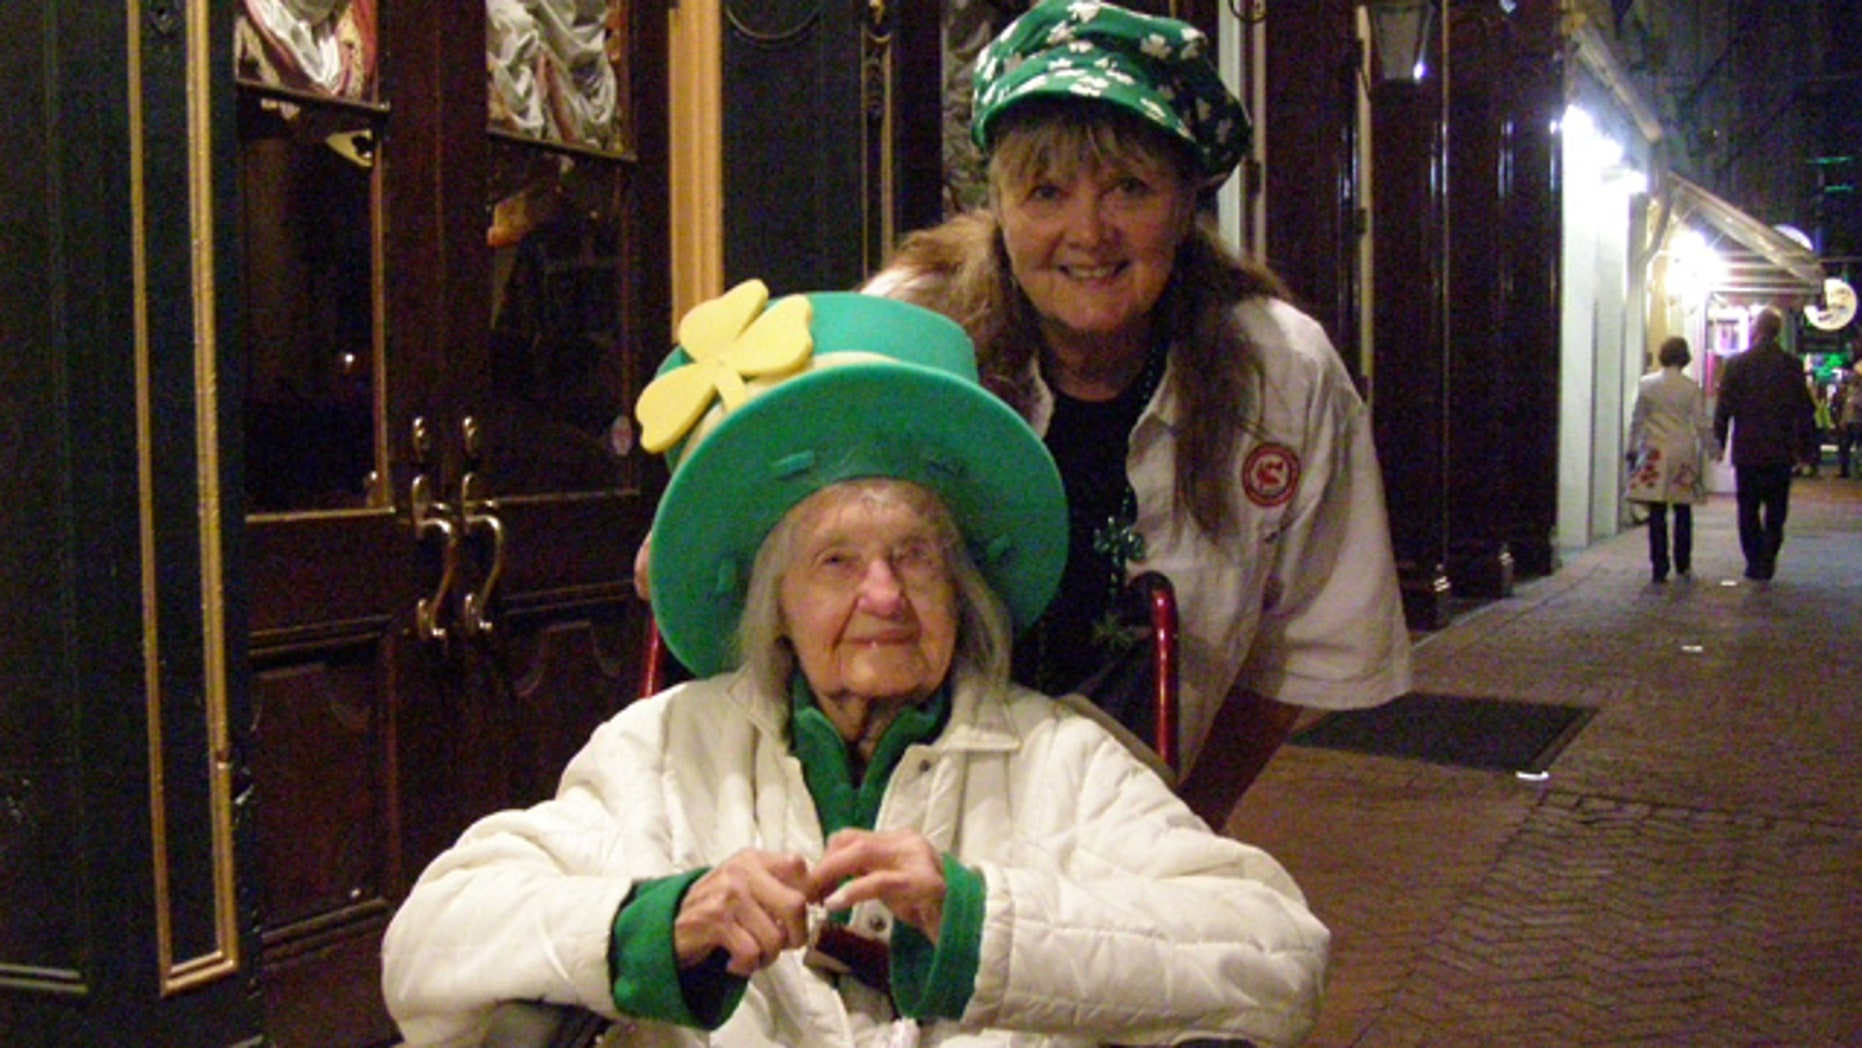 Lena Reppert and her daughter Jean Weber celebrate St. Patrick's Day in New Orleans in 2010. TSA agents stopped the elderly woman and made her remove her Depends before she boarded a flight, according to her daughter